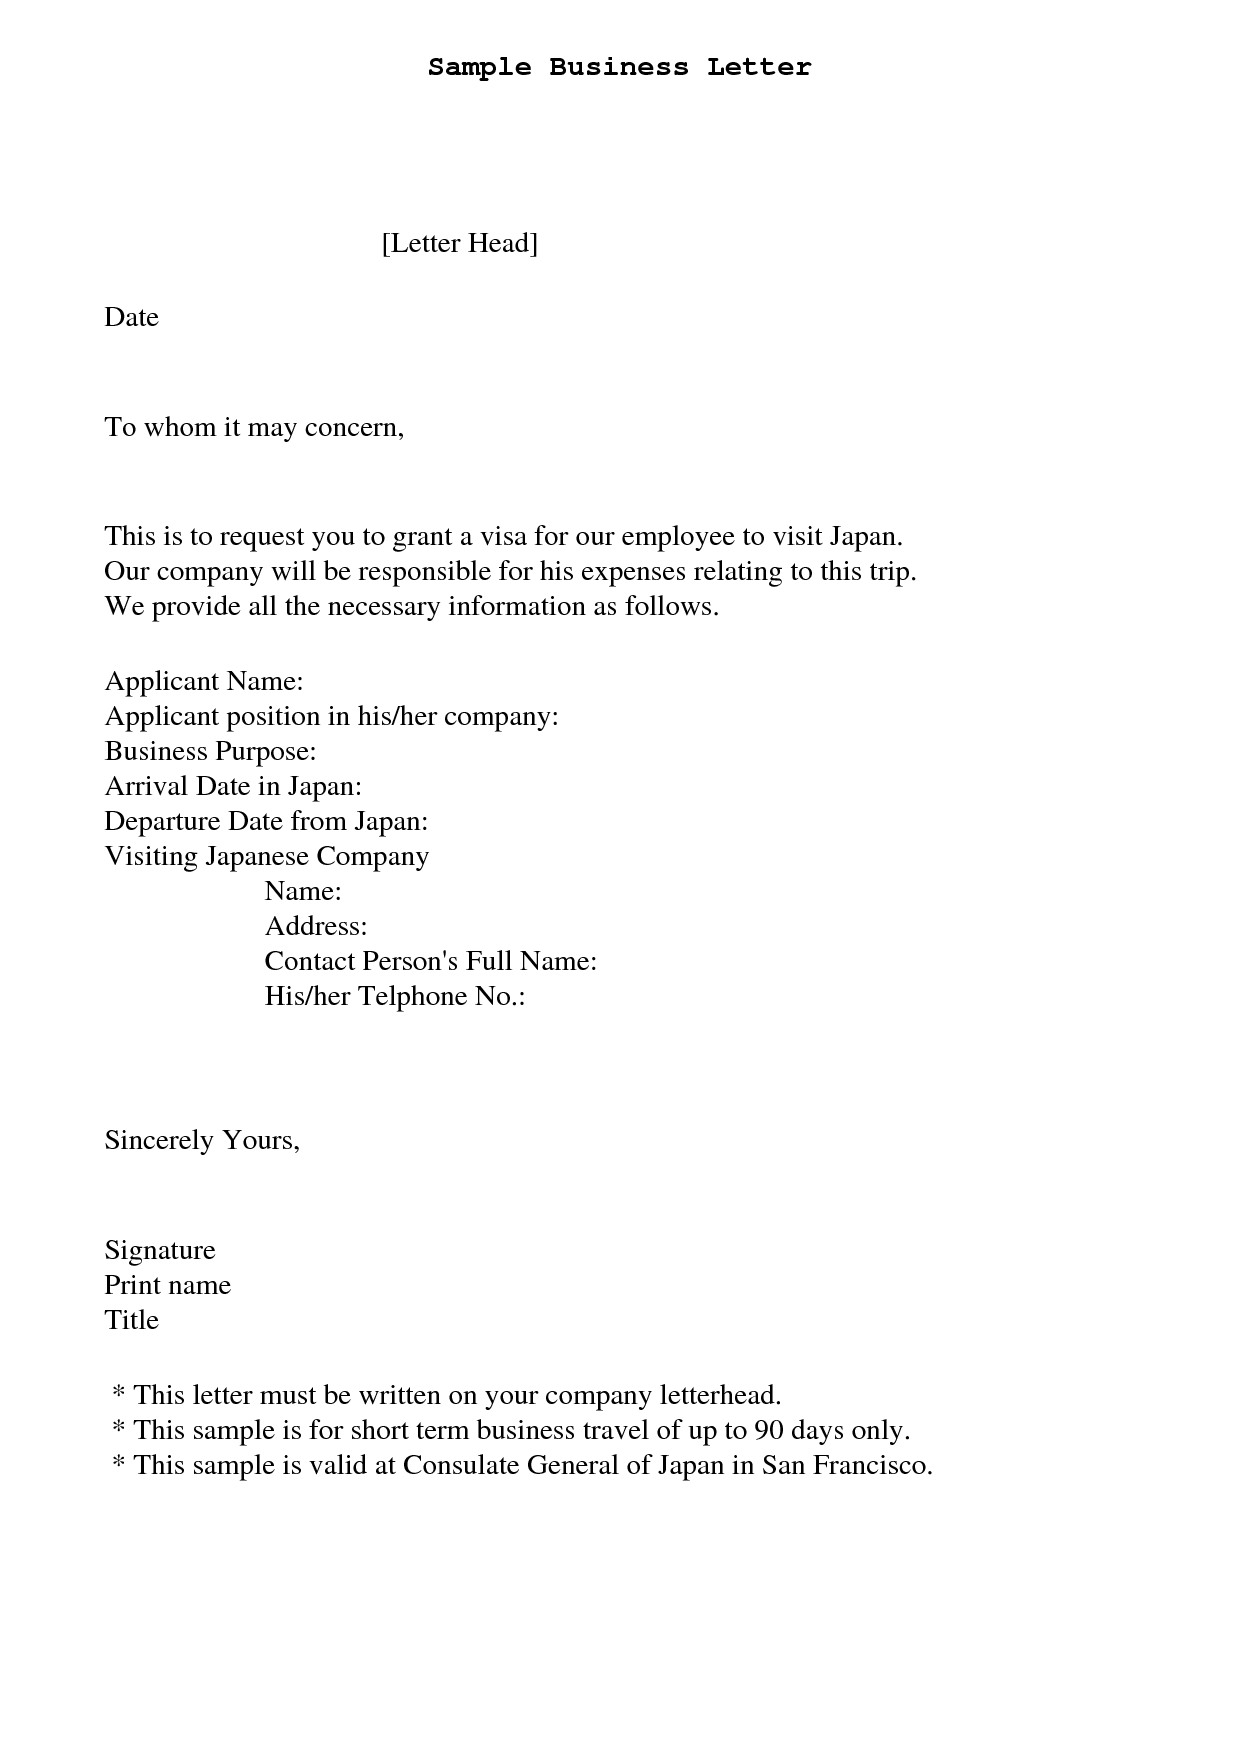 how to write how may i concern letter sample